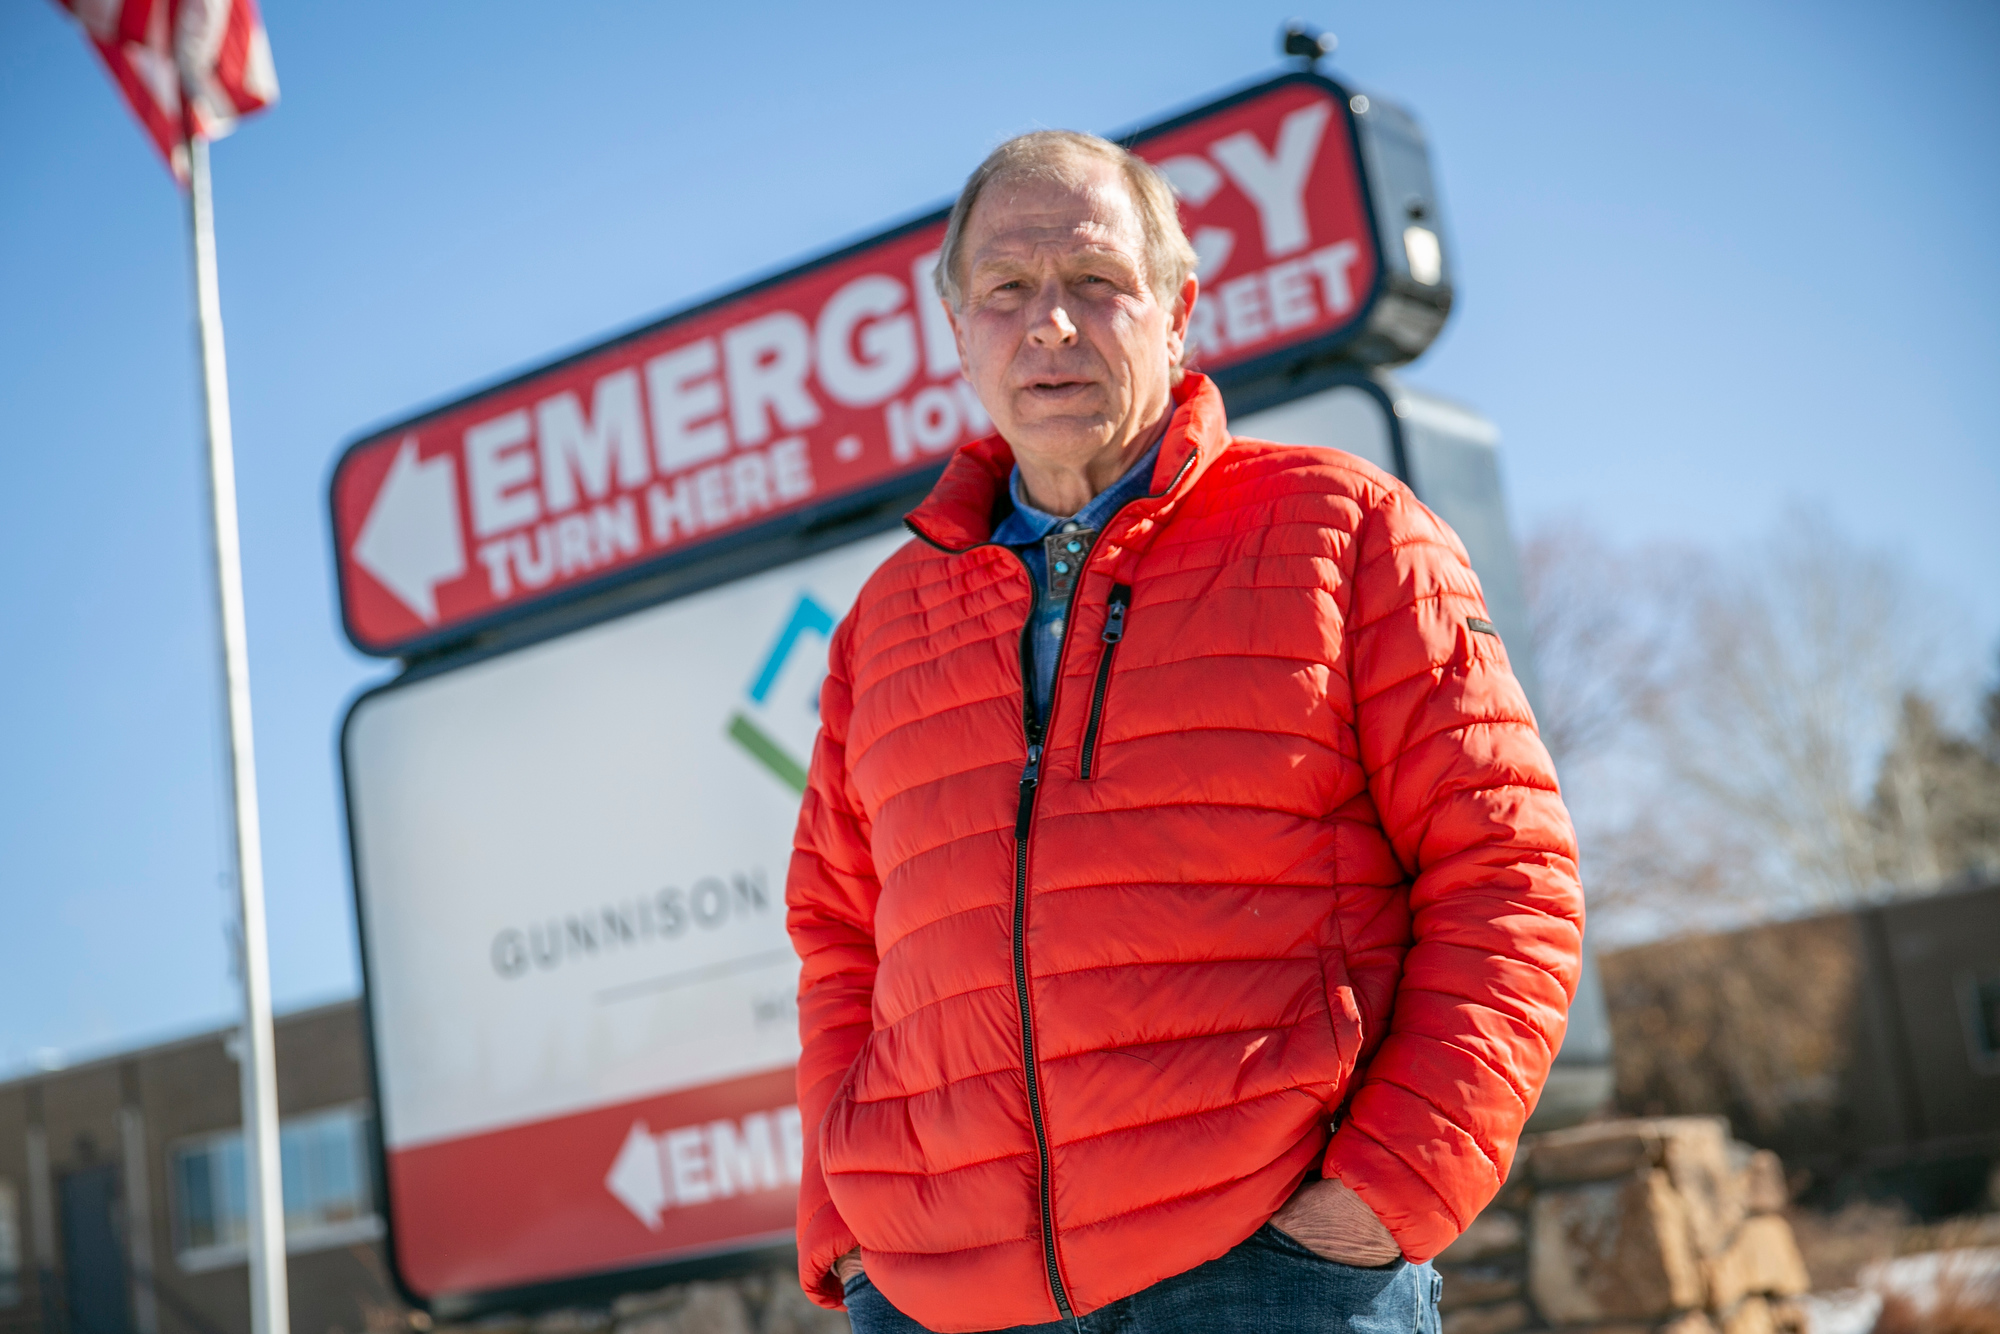 Joe Petersen now serves as a peer support specialist at Gunnison Valley Health, where he helps people who come into the ER because of a suicide attempt, drug overdose or other serious mental health concerns — issues he himself has survived. Photographed in Gunnison on Wednesday, Feb. 24, 2021.